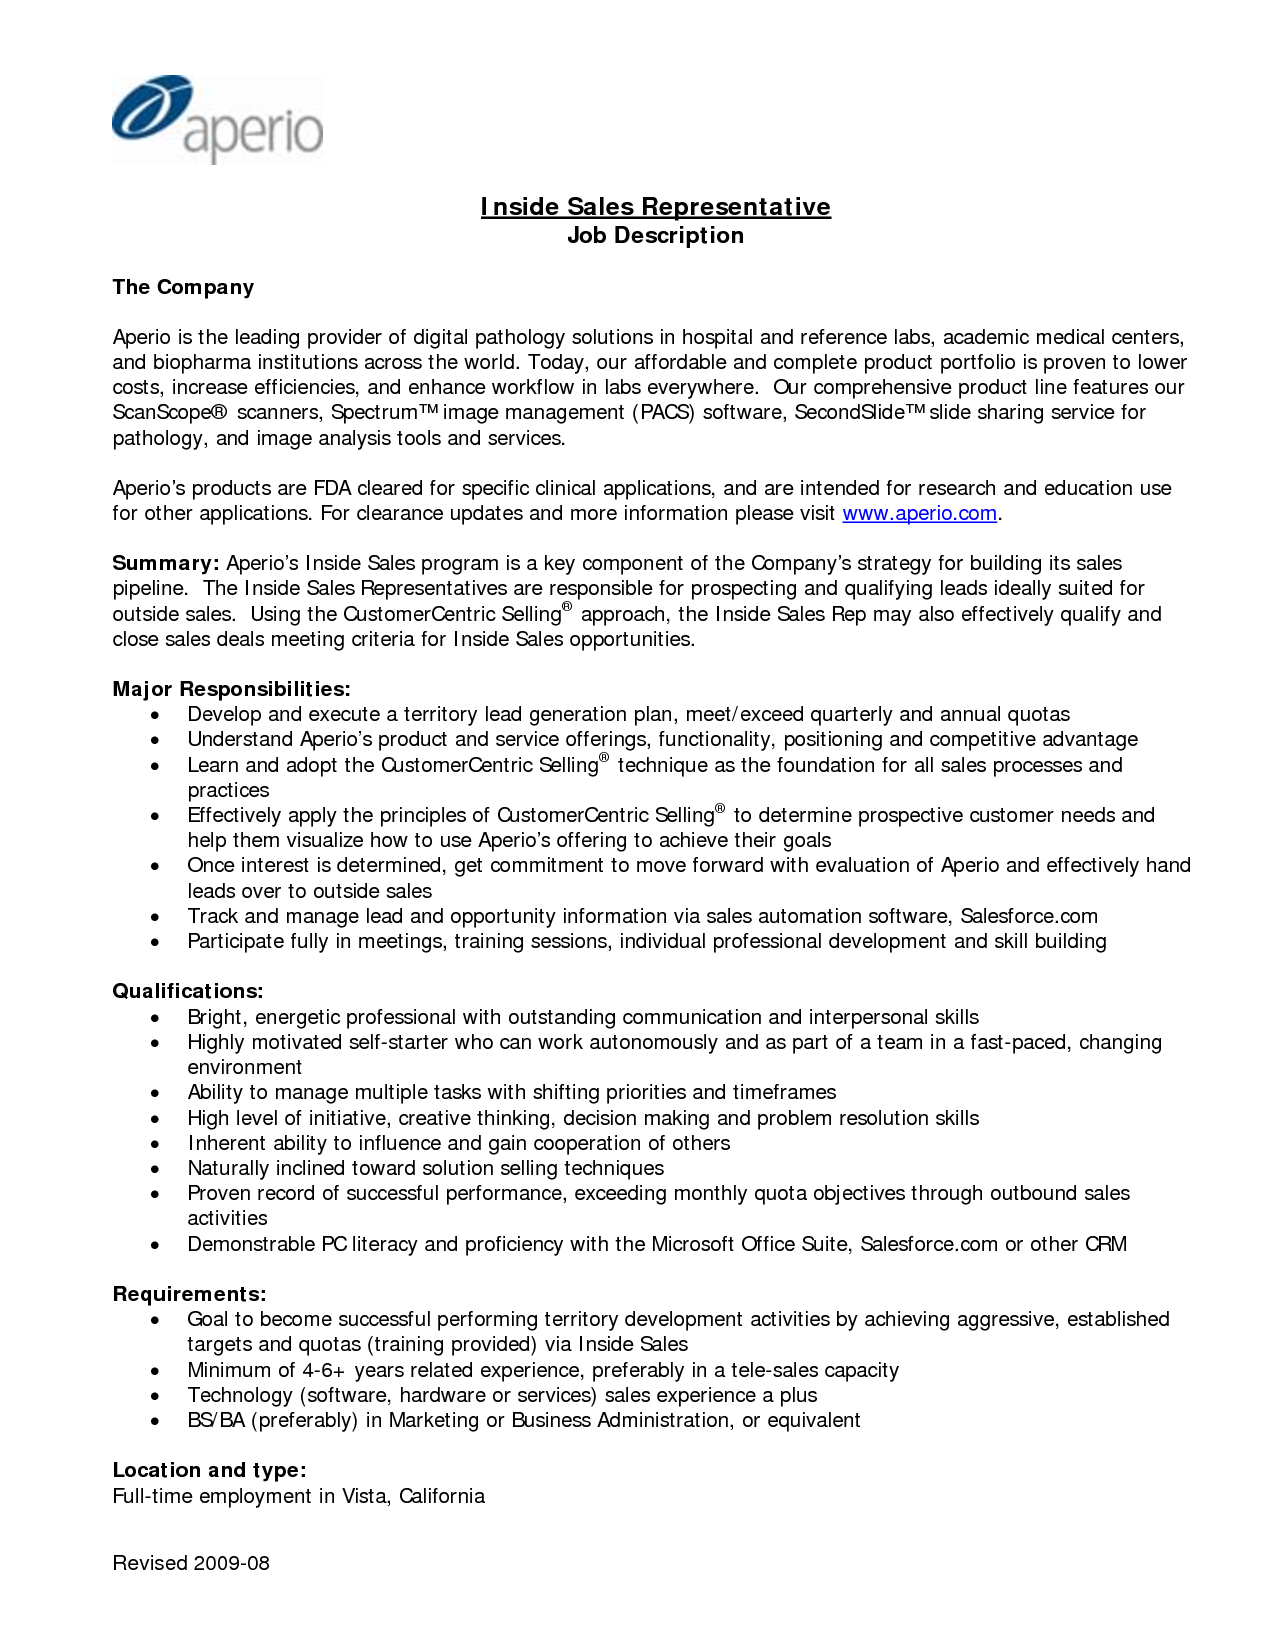 inside sales representative resume examples inside sales - Resume Examples For Job